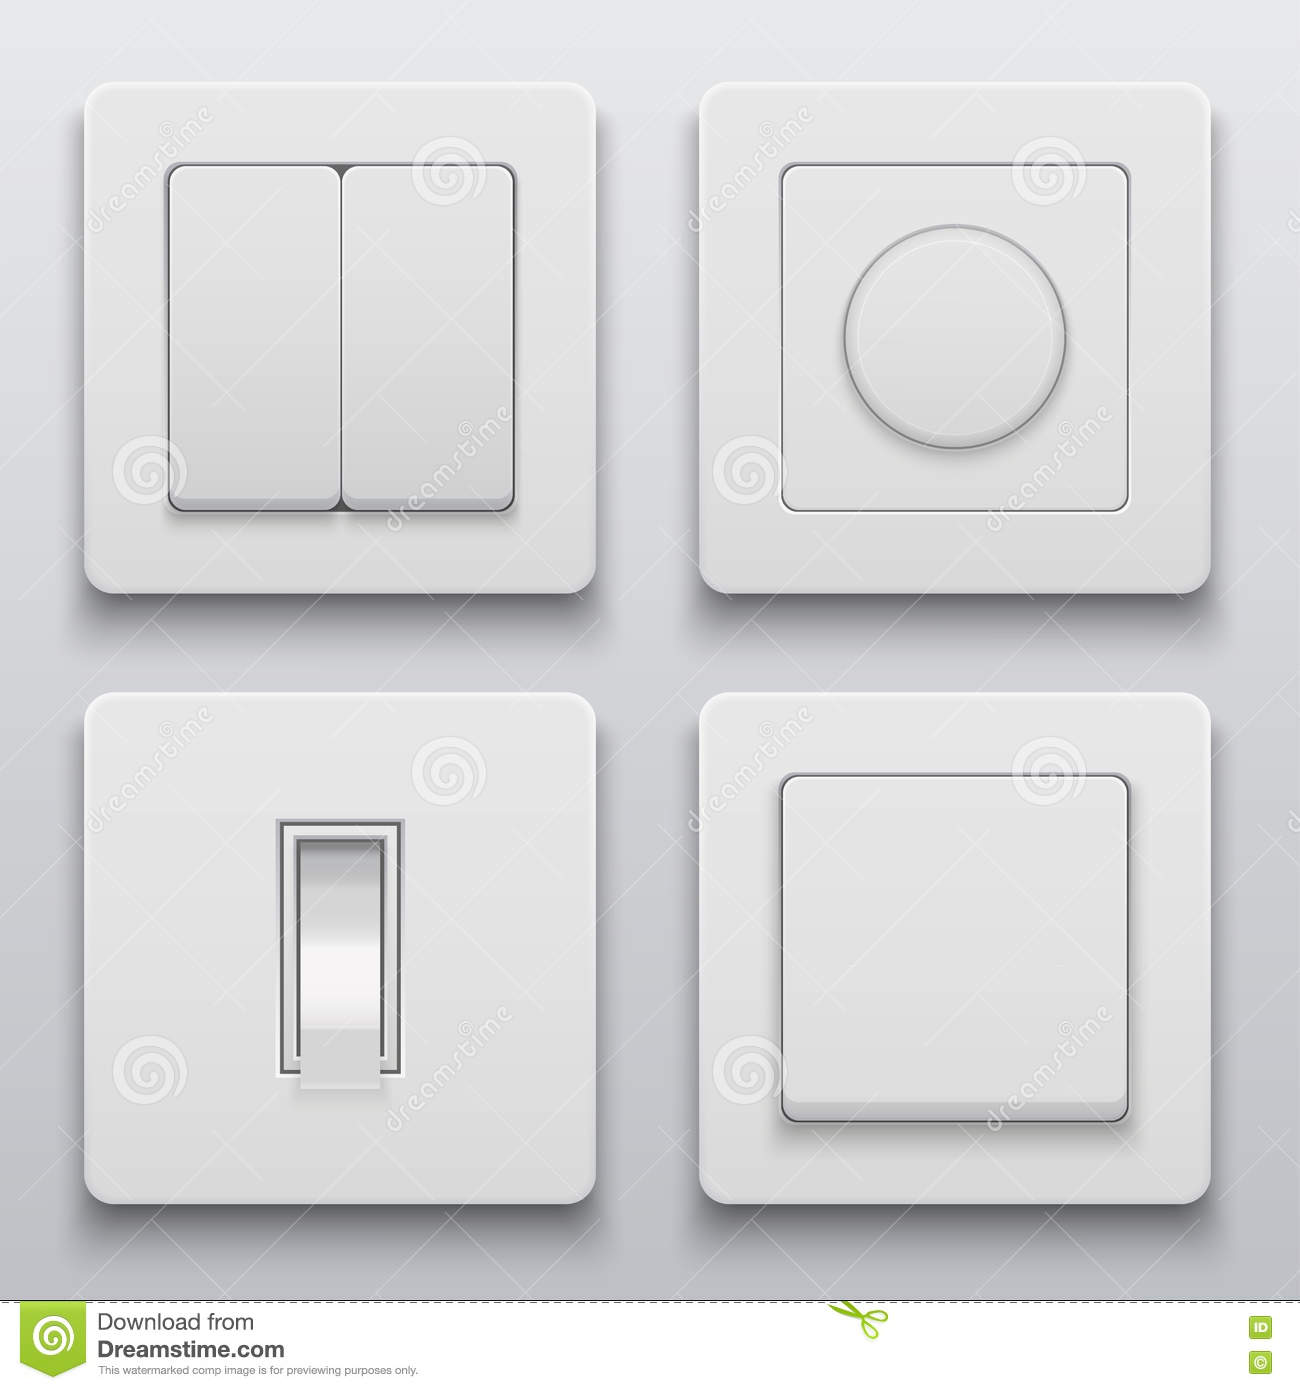 Vector Modern Light Switch Icons Set Stock Vector - Illustration of ...